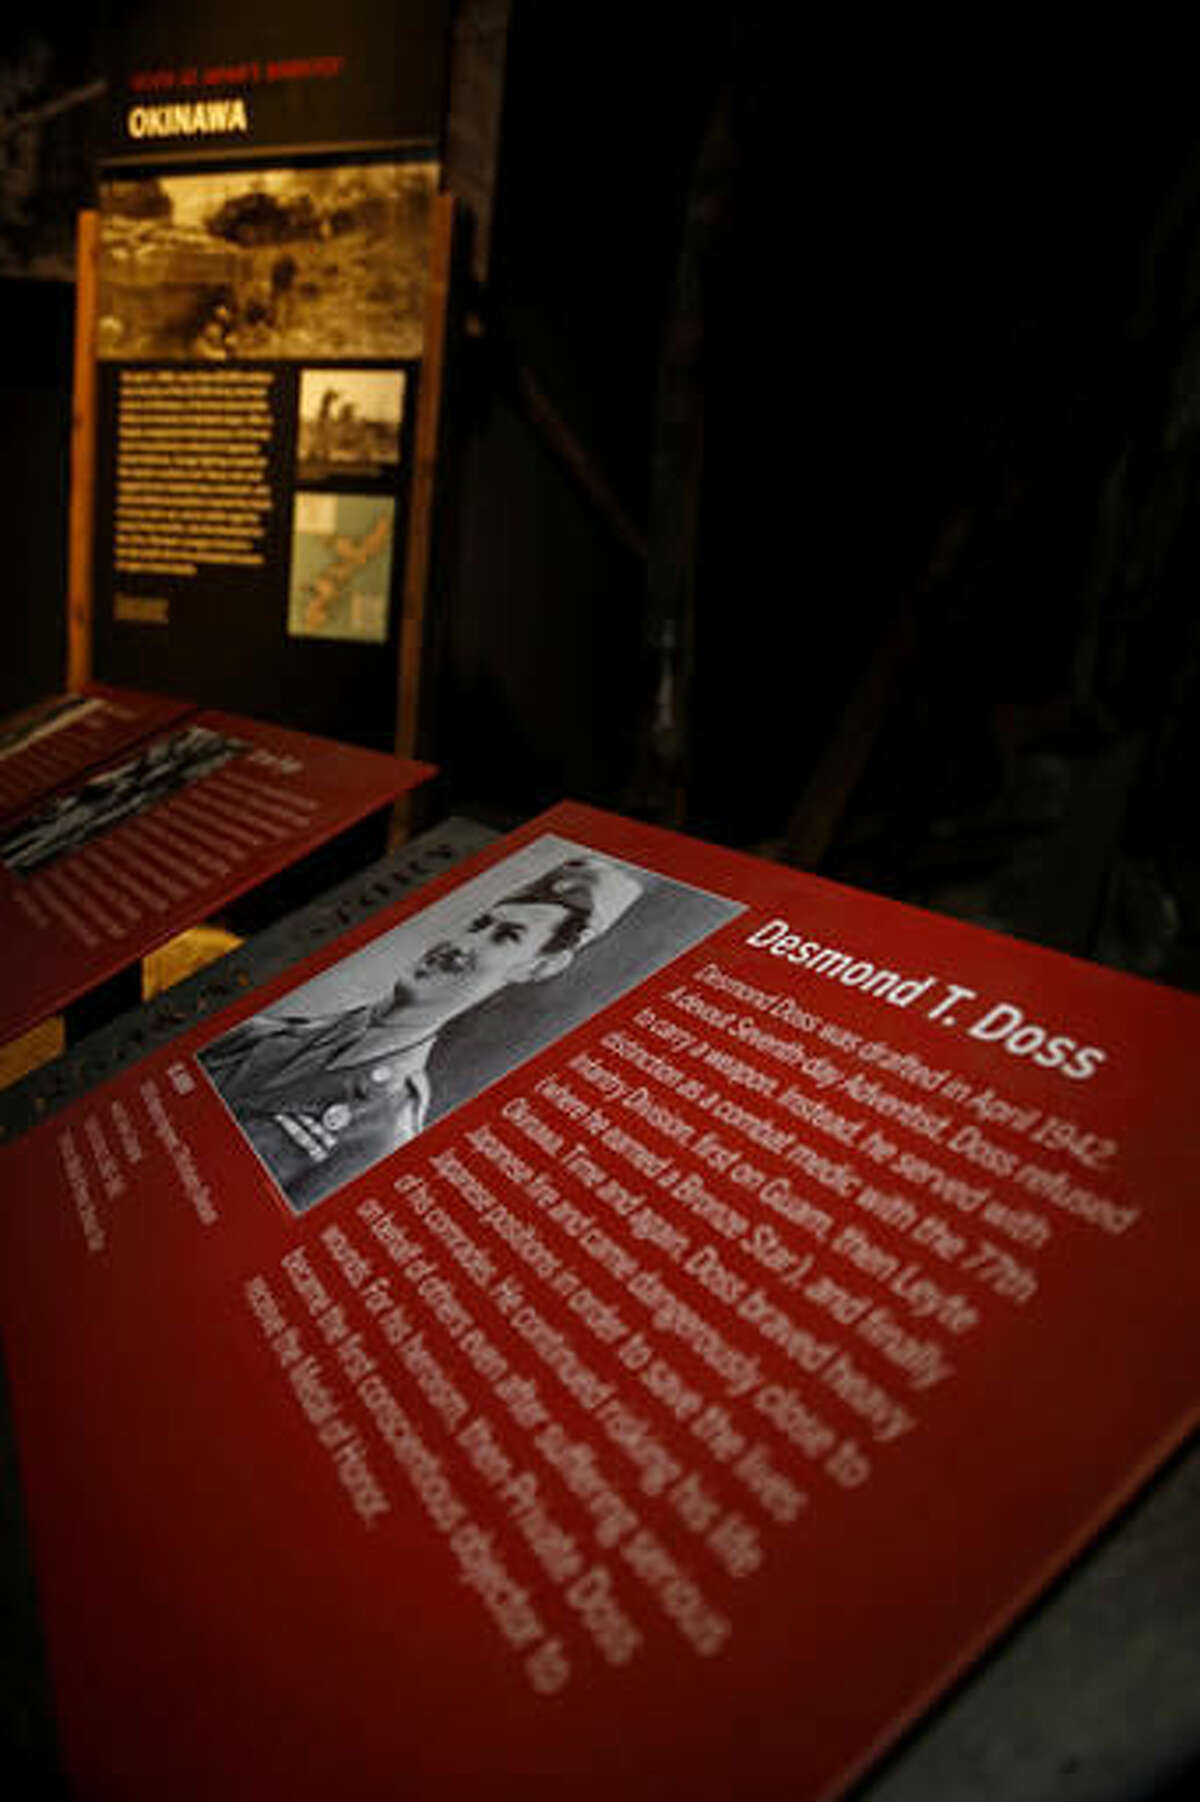 """A plaque describing the personal story of Congressional Medal of Honor recipient, Desmond Doss, is part of the Okinawa display at The National WWII Museum, in New Orleans, Wednesday, Oct. 26, 2016. The film """"Hacksaw Ridge,"""" directed by Mel Gibson, depicts the life of conscientious objector Desmond Doss. (AP Photo/Max Becherer)"""